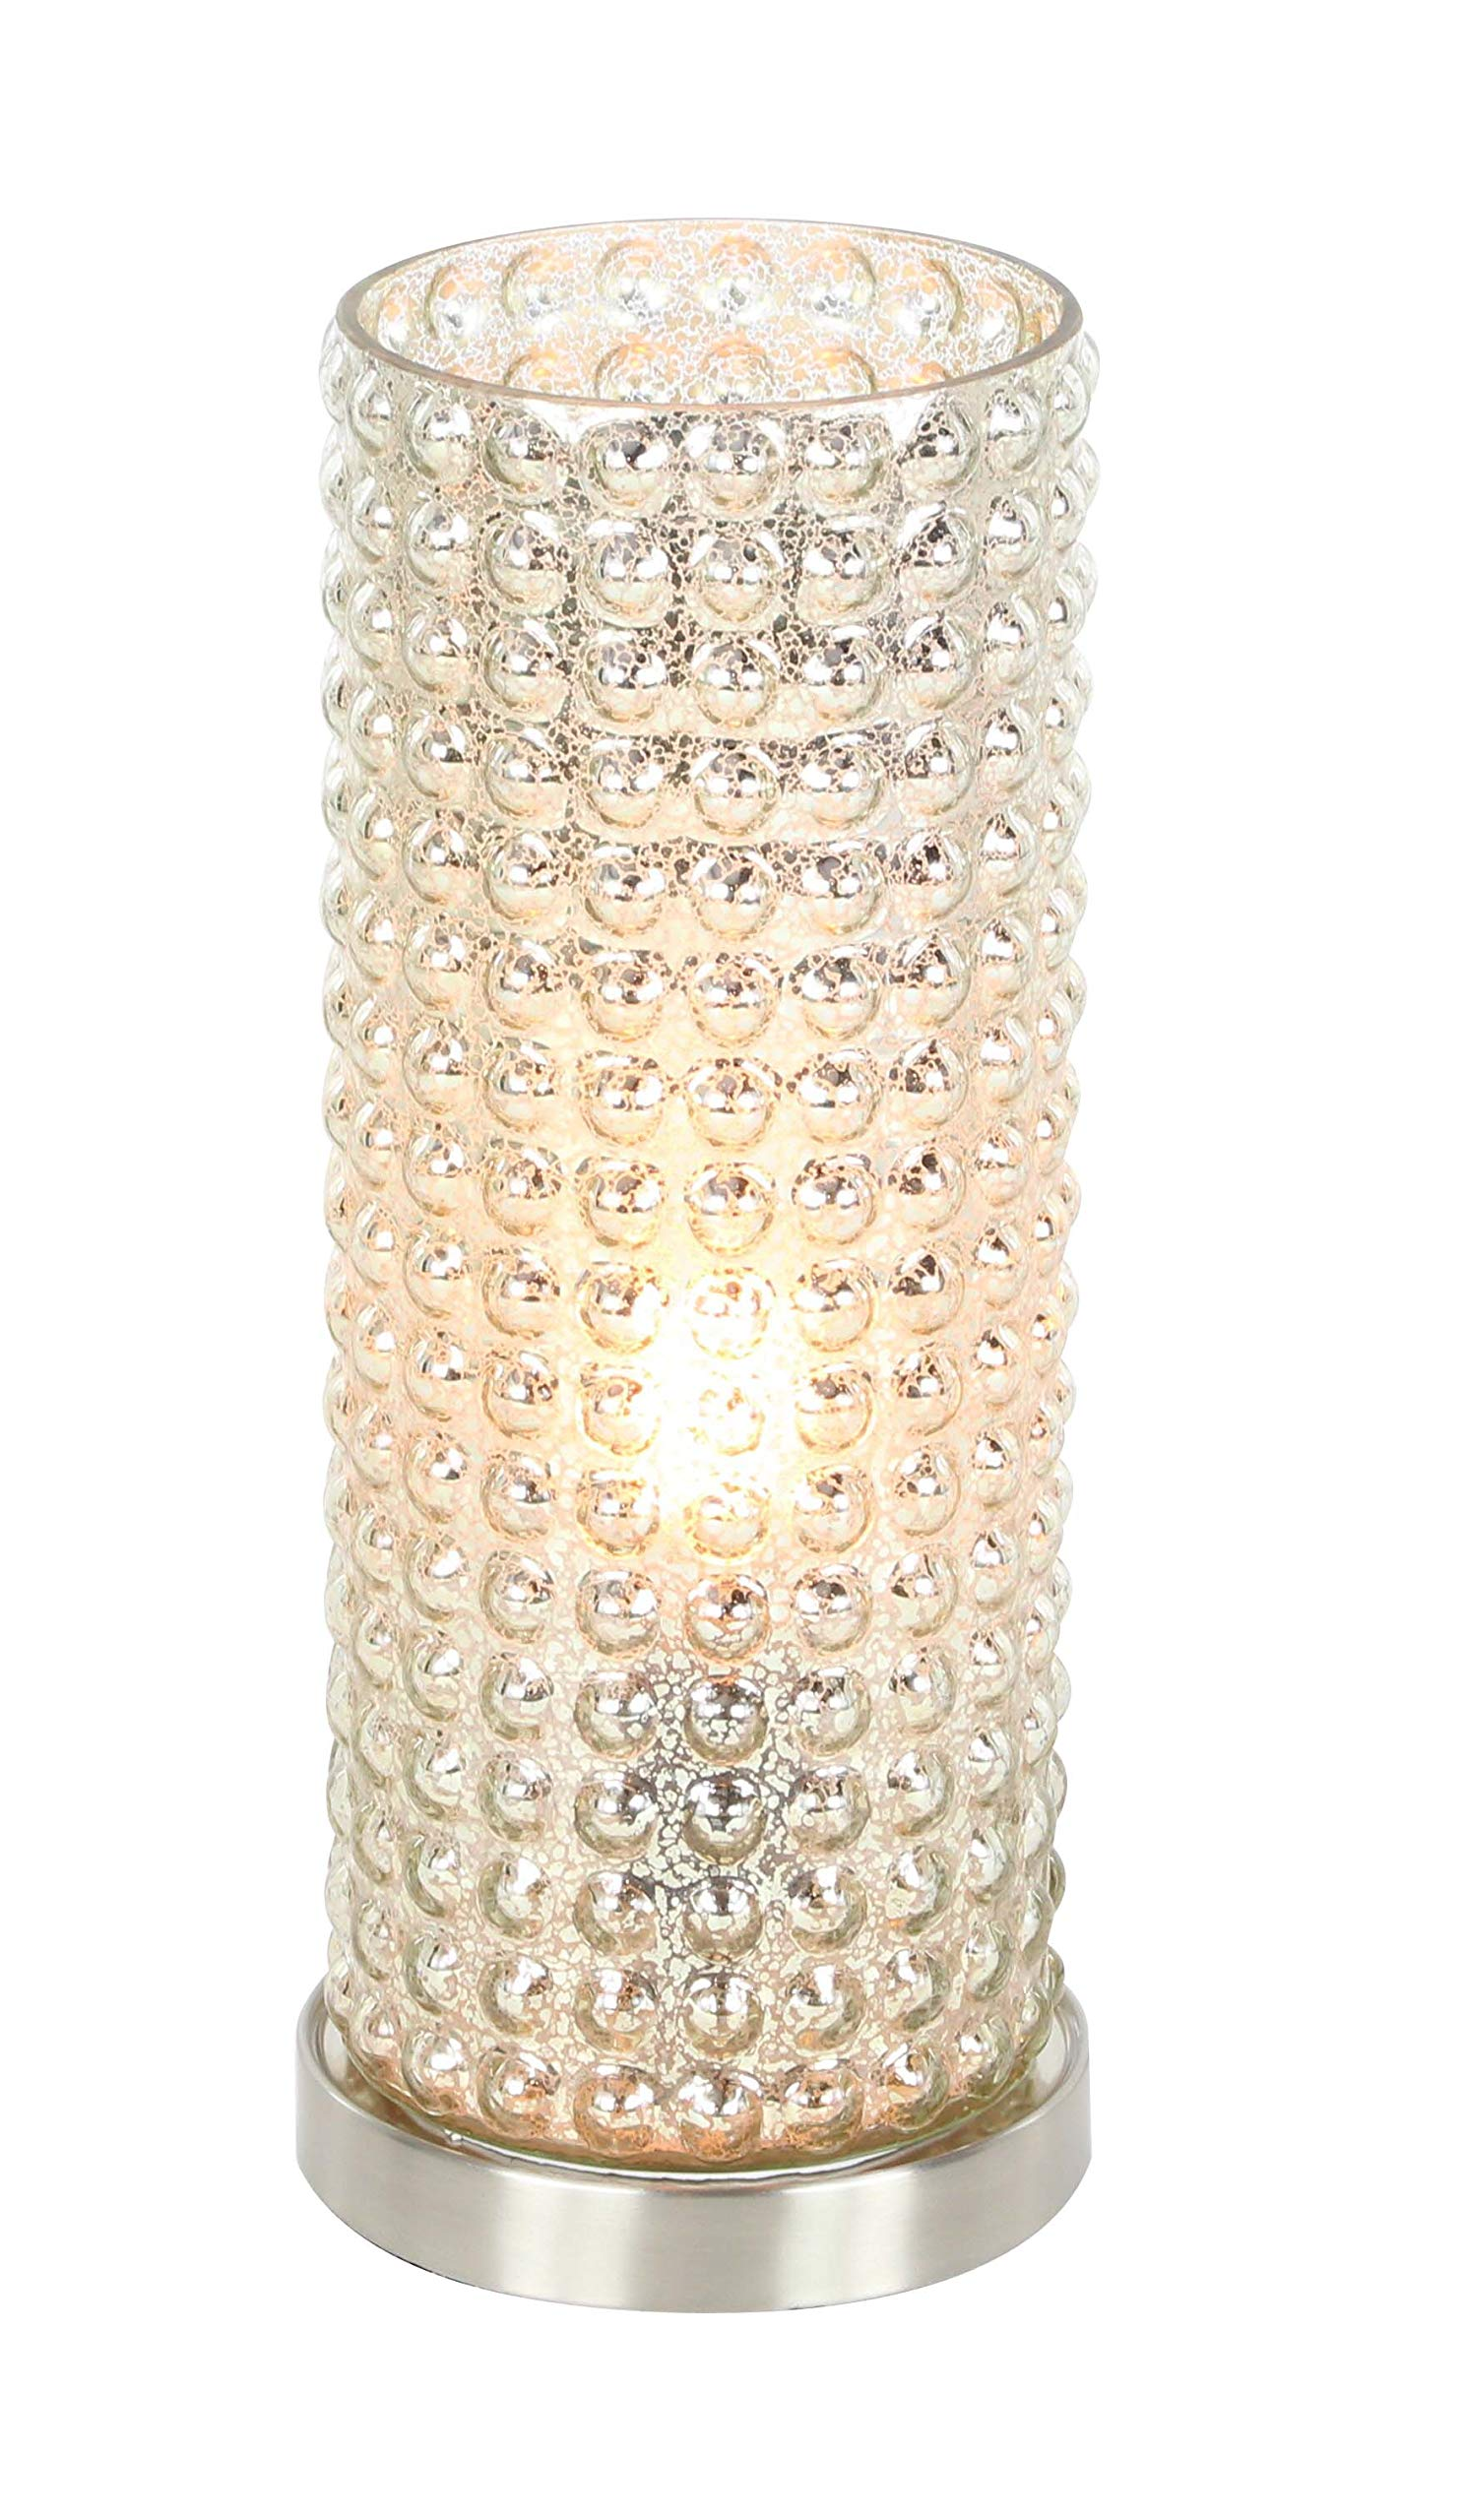 Deco 79 Glass and Metal Uplight, 15'', Clear/Silver, 2 Piece